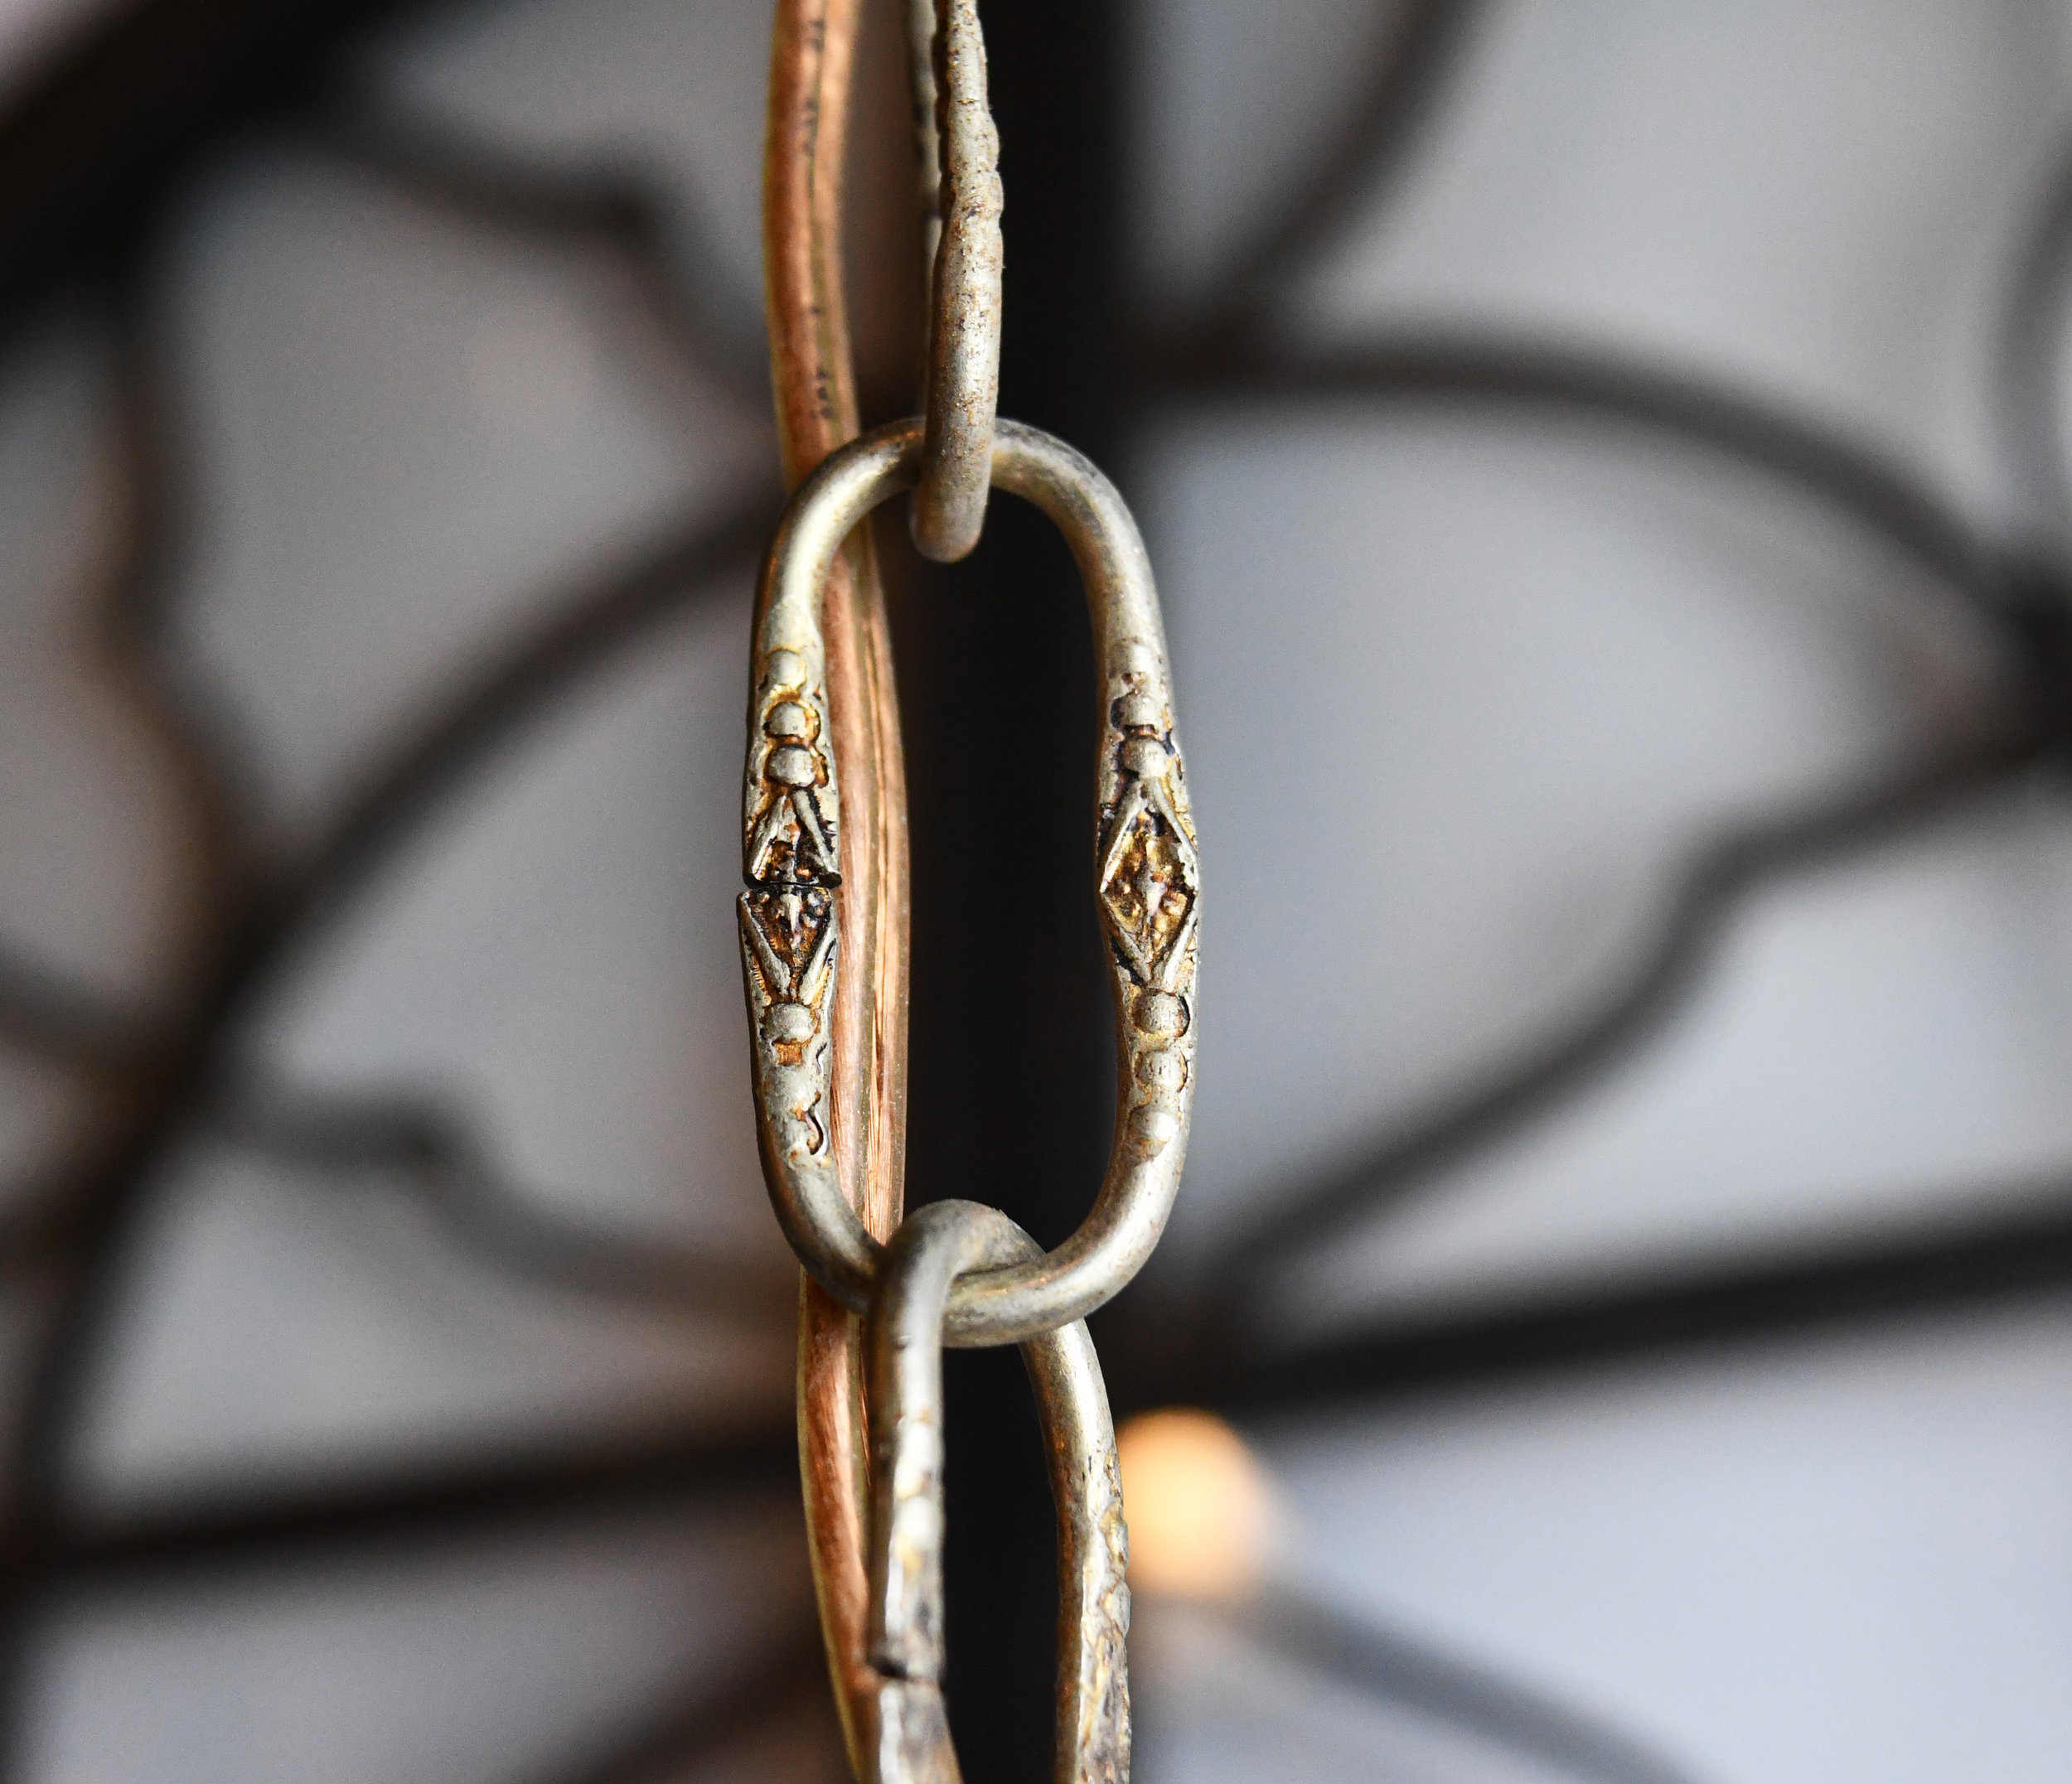 47331-brass-pendant-with-filagree-chain.JPG